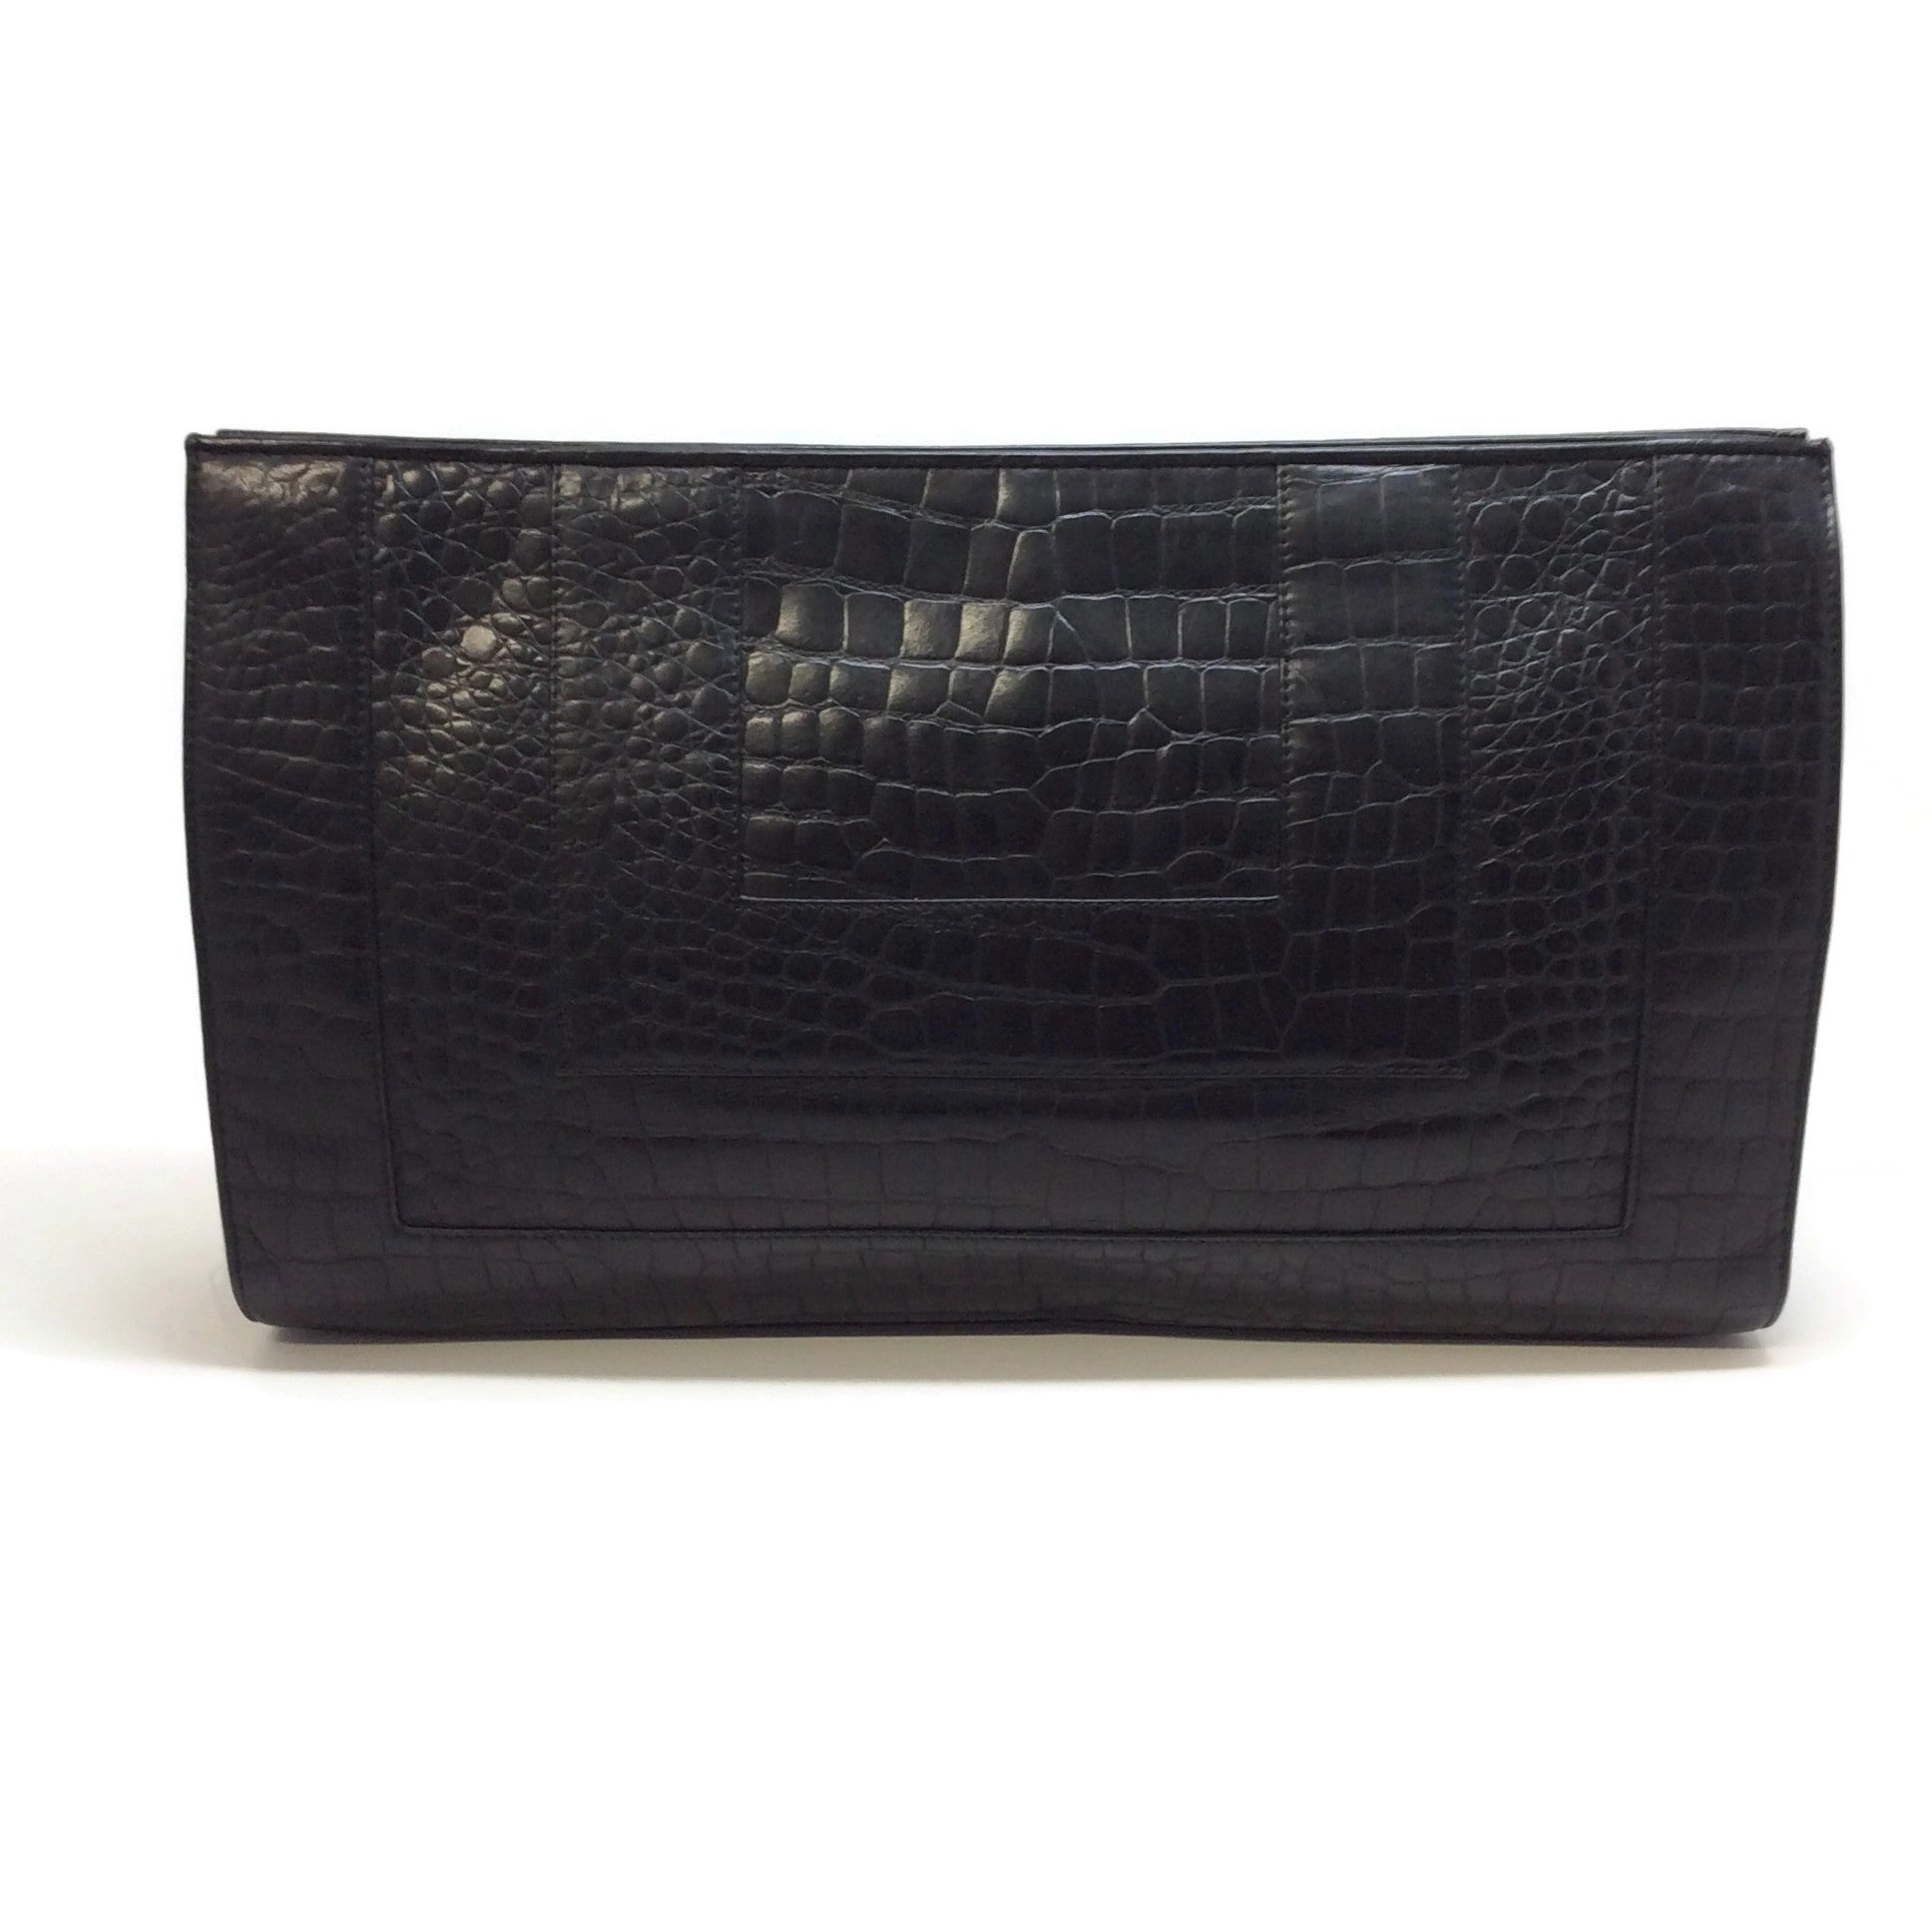 Fendi Vintage Large Black Crocodile Skin Leather Clutch